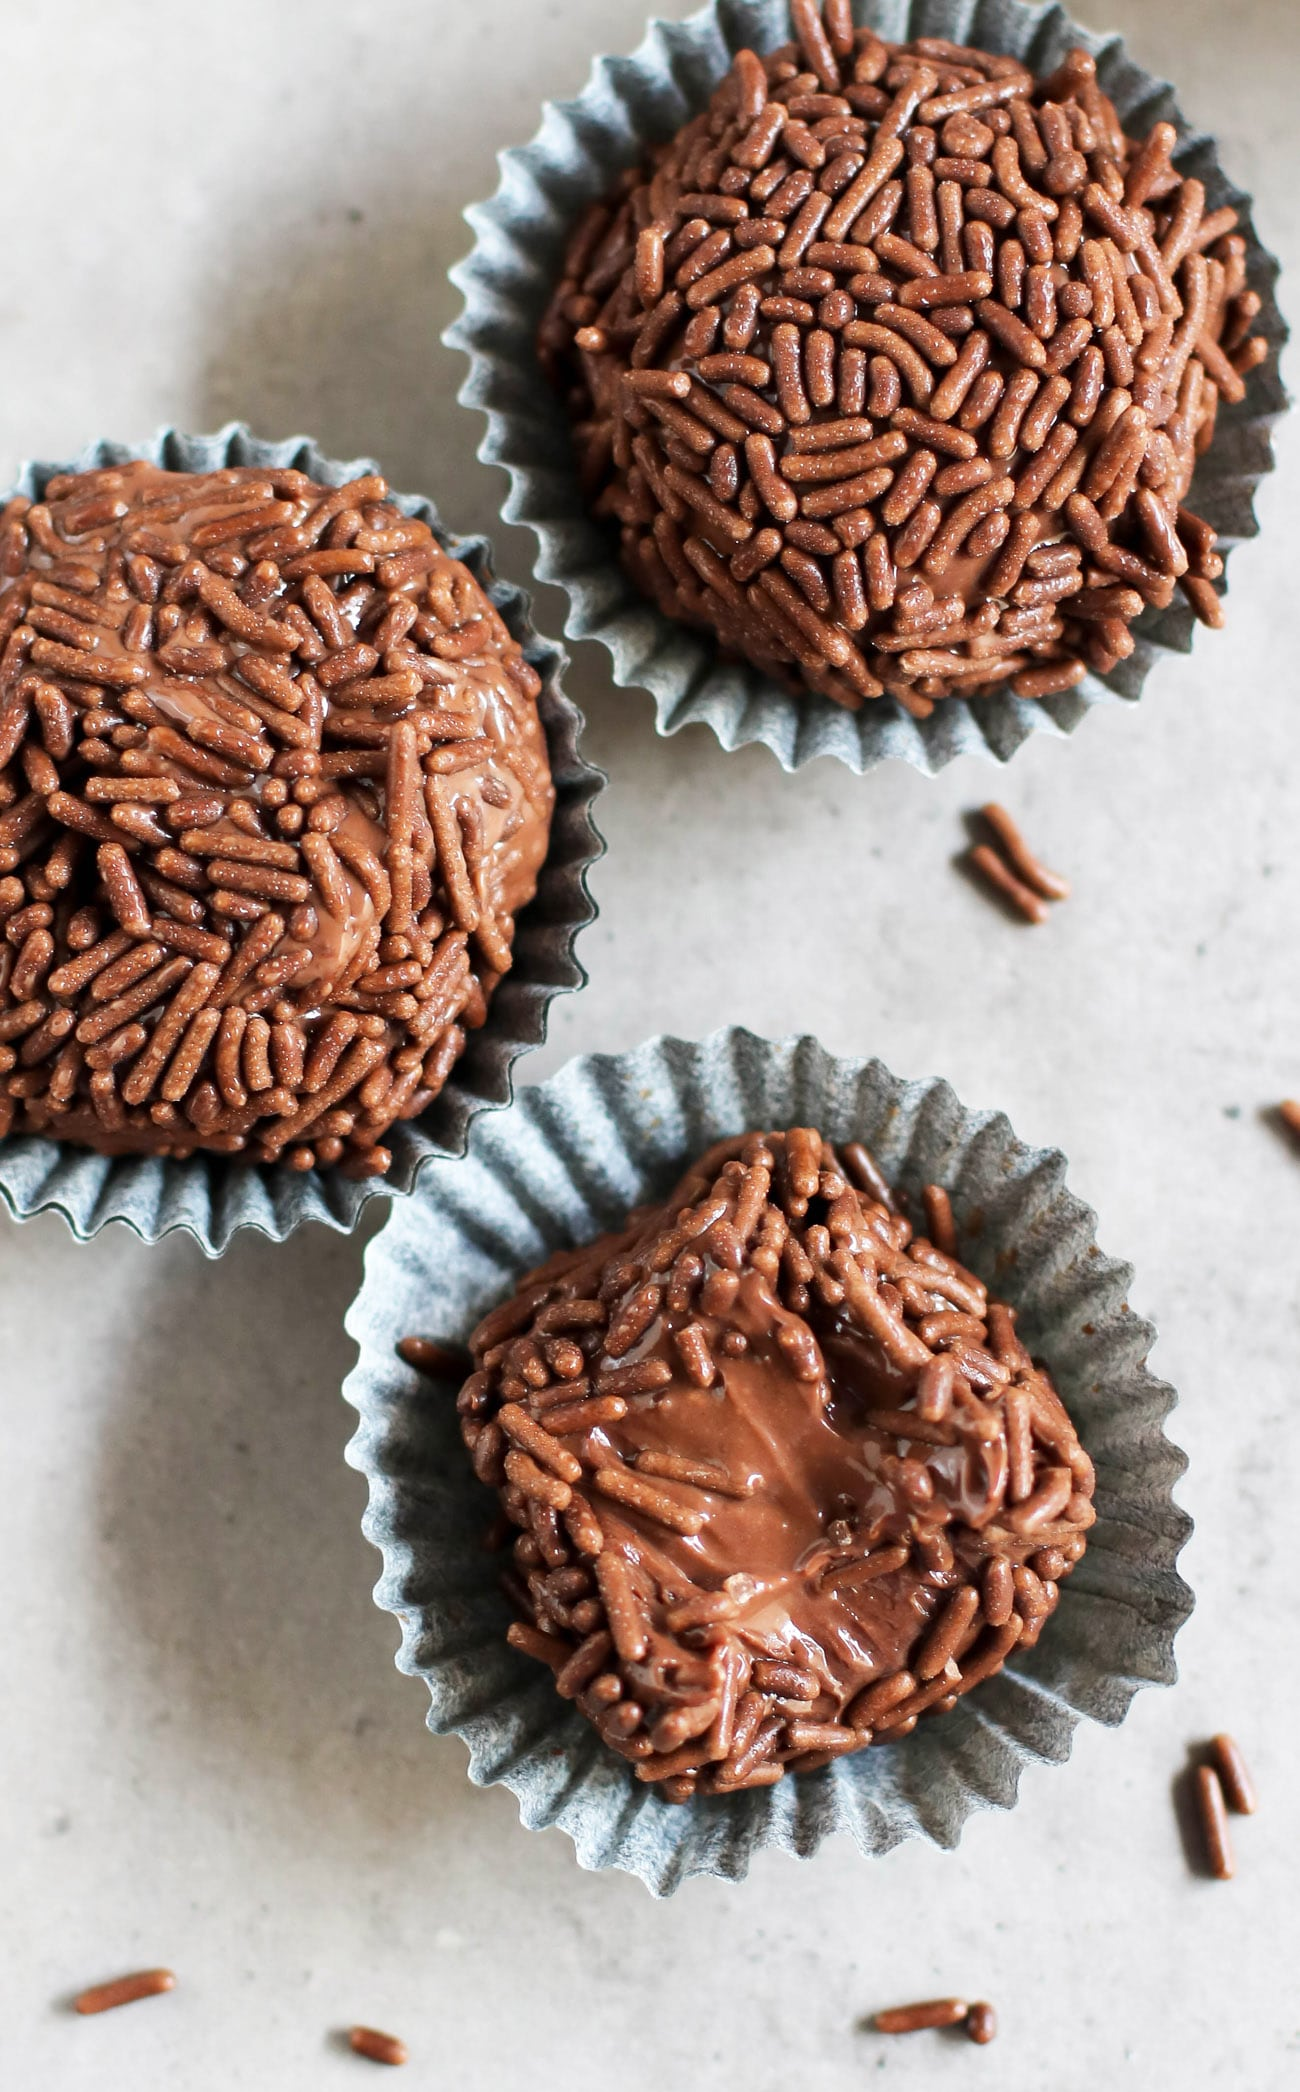 These Healthy Brigadeiros are ULTRA fudgy, smooth, and creamy, with a slight crunch from the chocolate sprinkles. The taste is SPOT ON! You'd never guess that these Brazilian chocolate truffles are made with healthier ingredient swaps to make them lower in calories, fat, and sugar compared to the original.